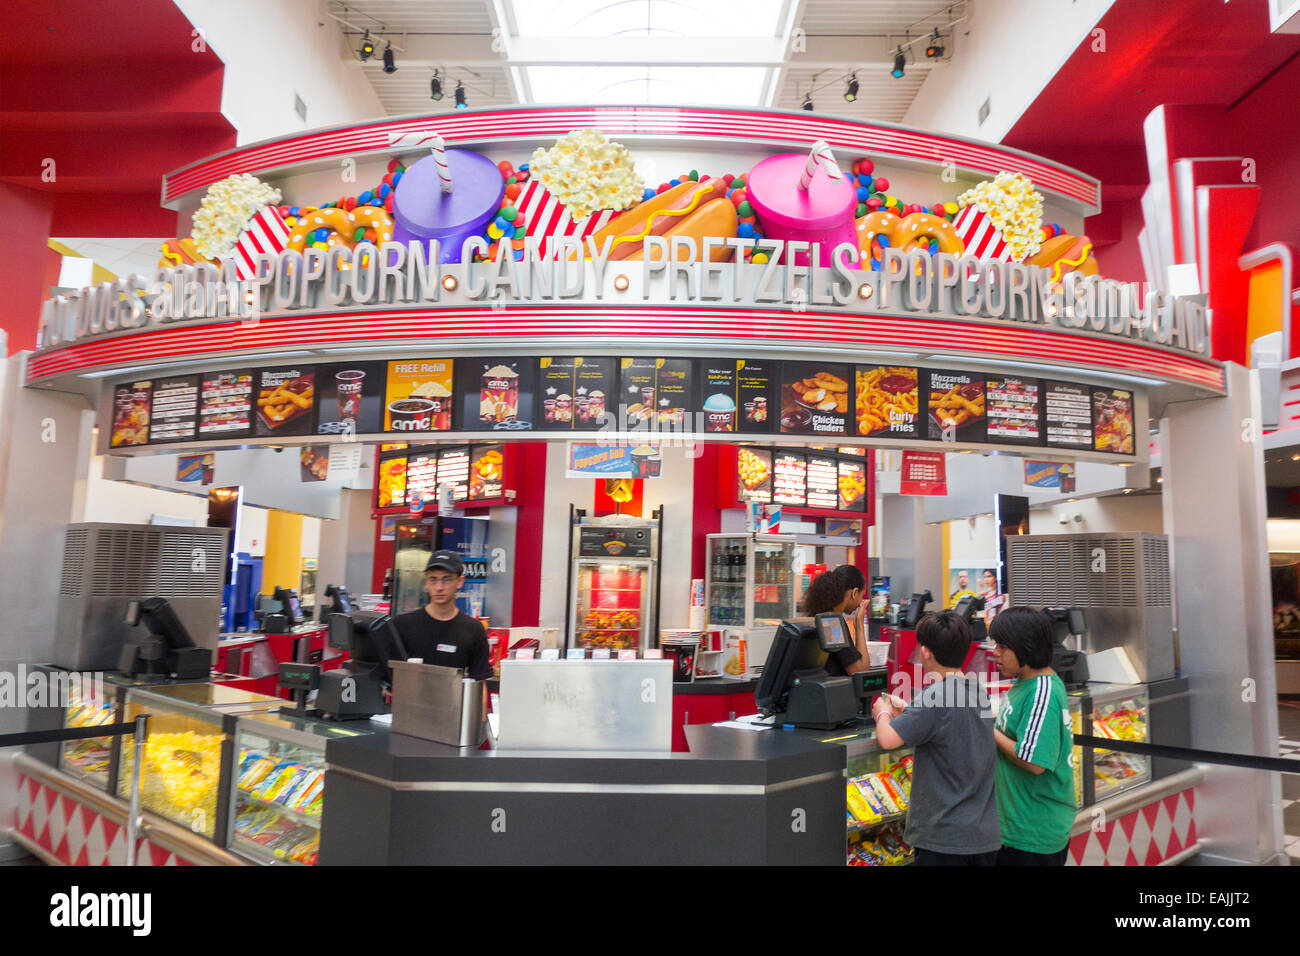 movie theater concession stand Stock Photo